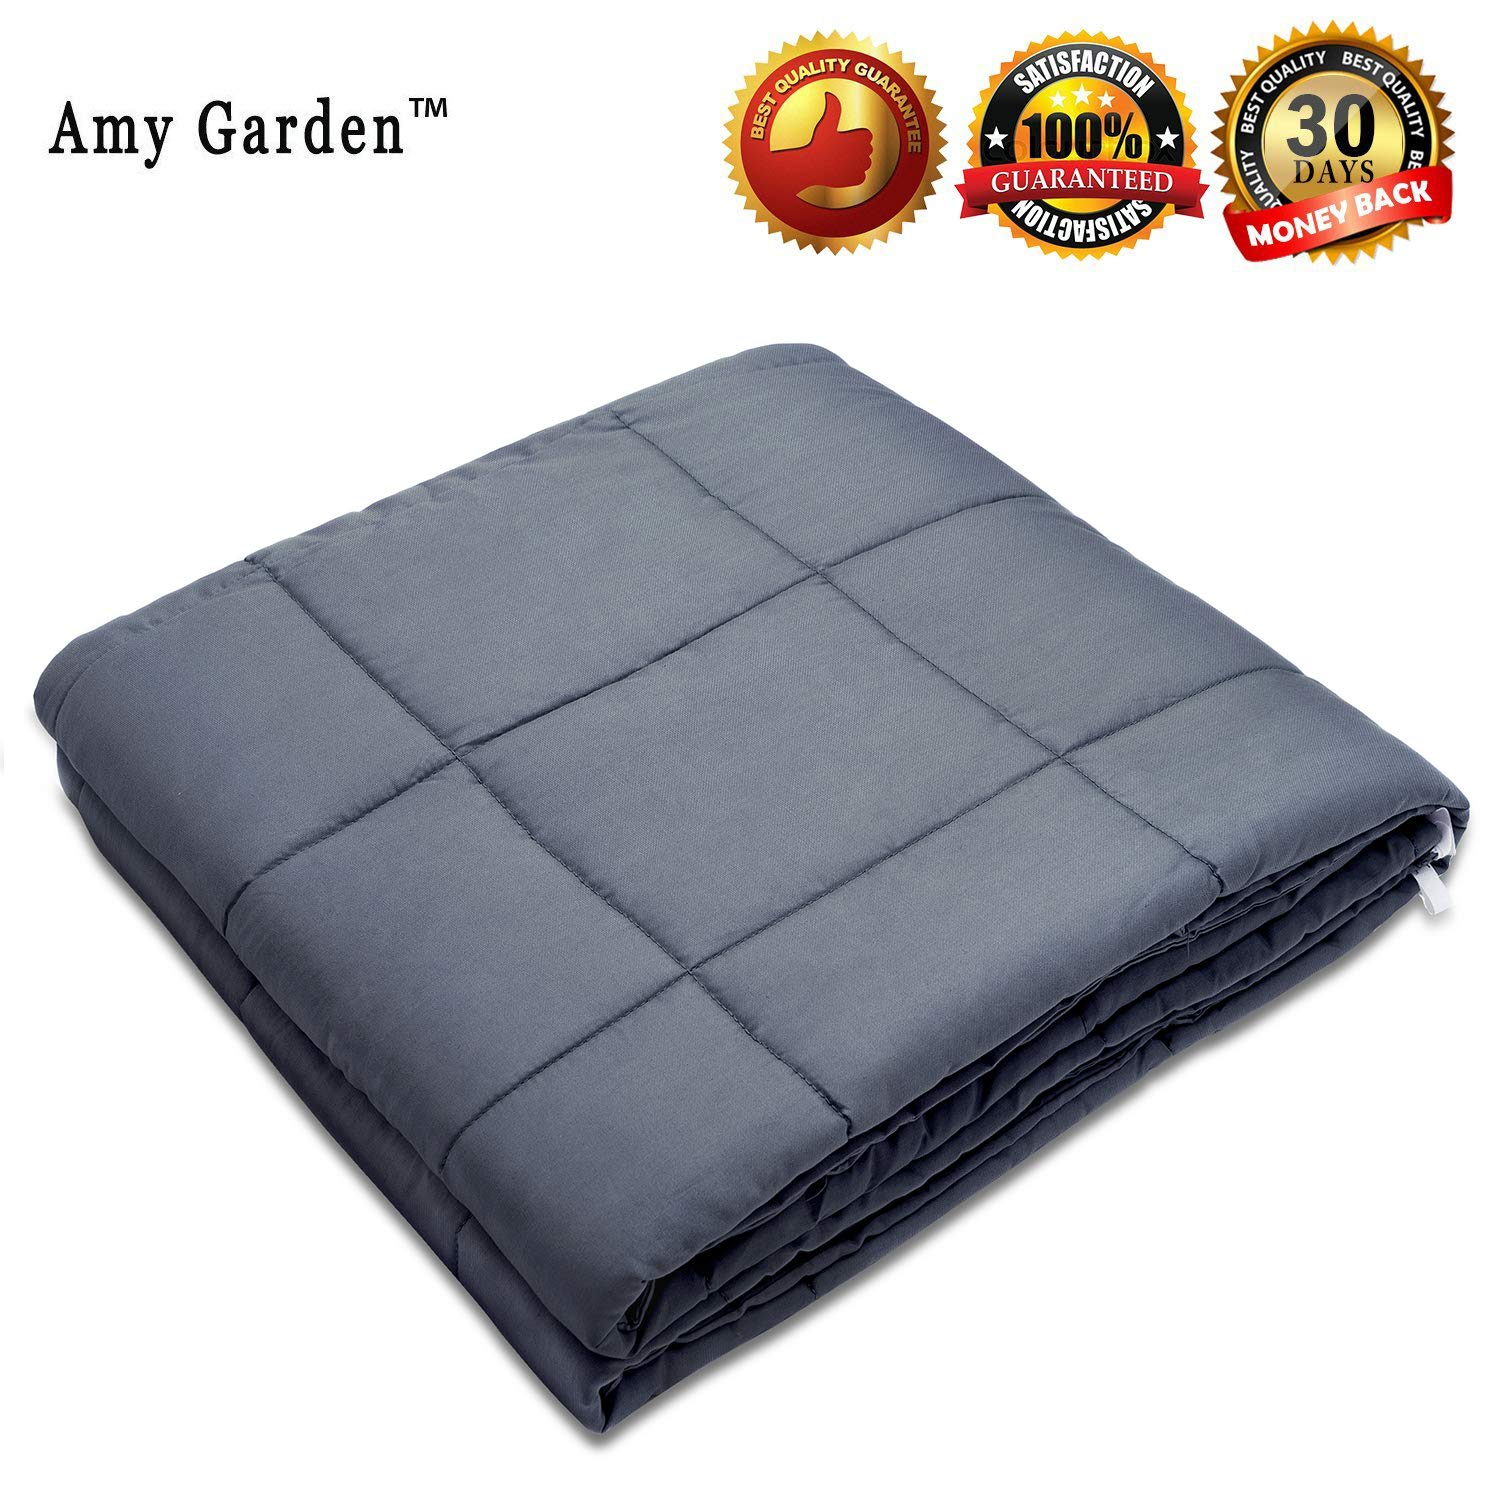 Amy Garden Weighted Blanket for Anxiety, ADHD, Autism, Insomnia or Stress